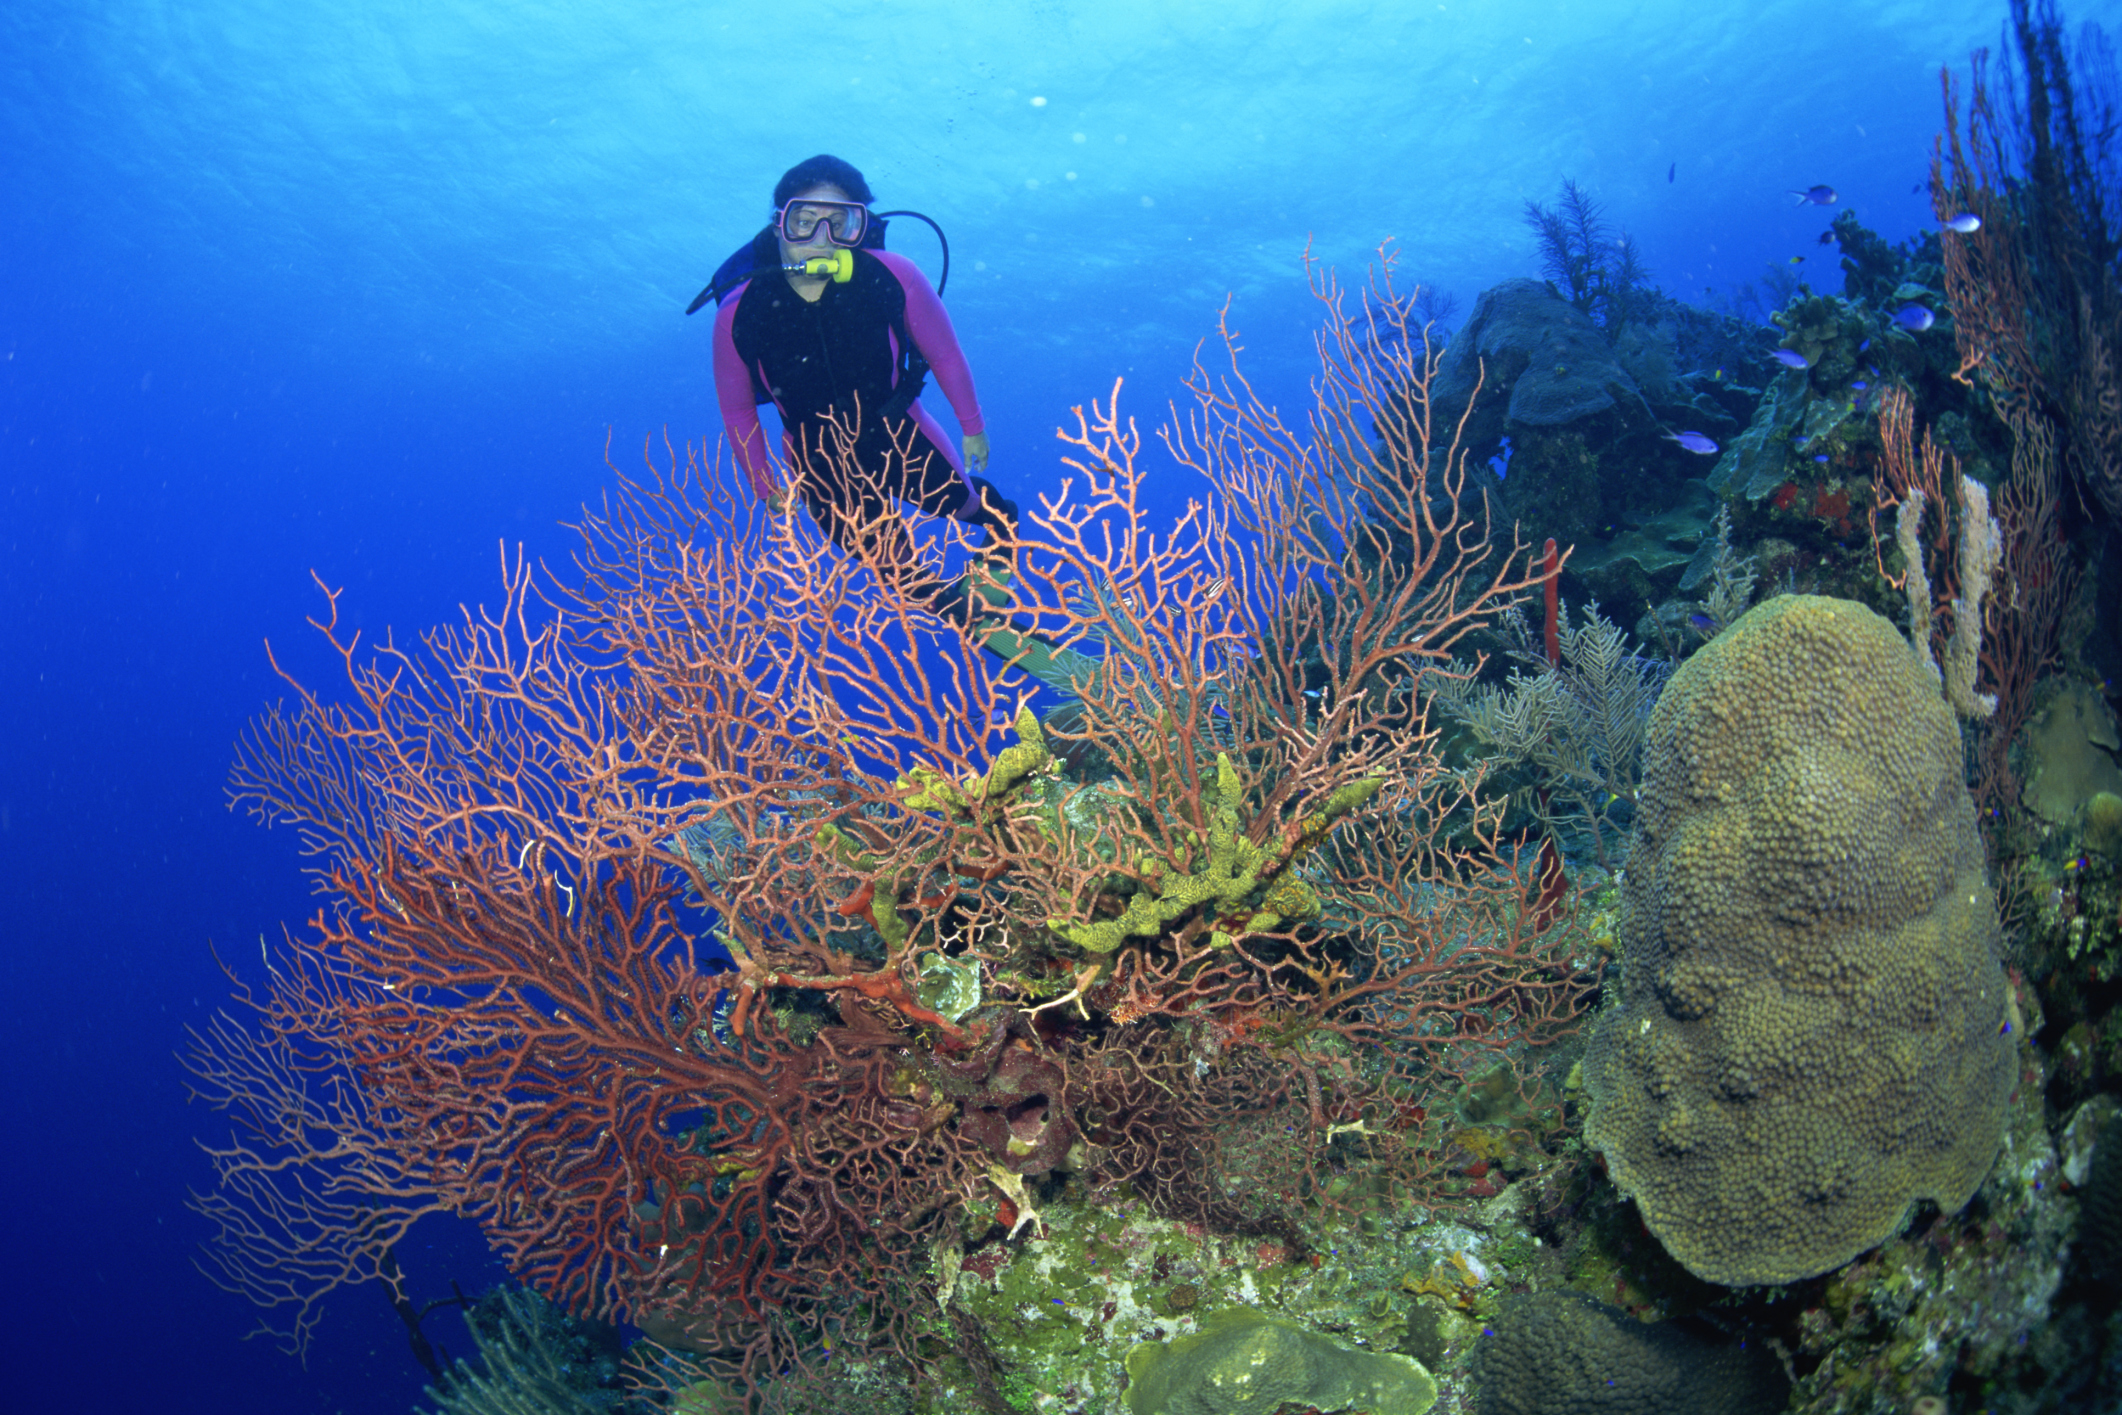 What Education Is Needed To Become A Marine Archaeologist